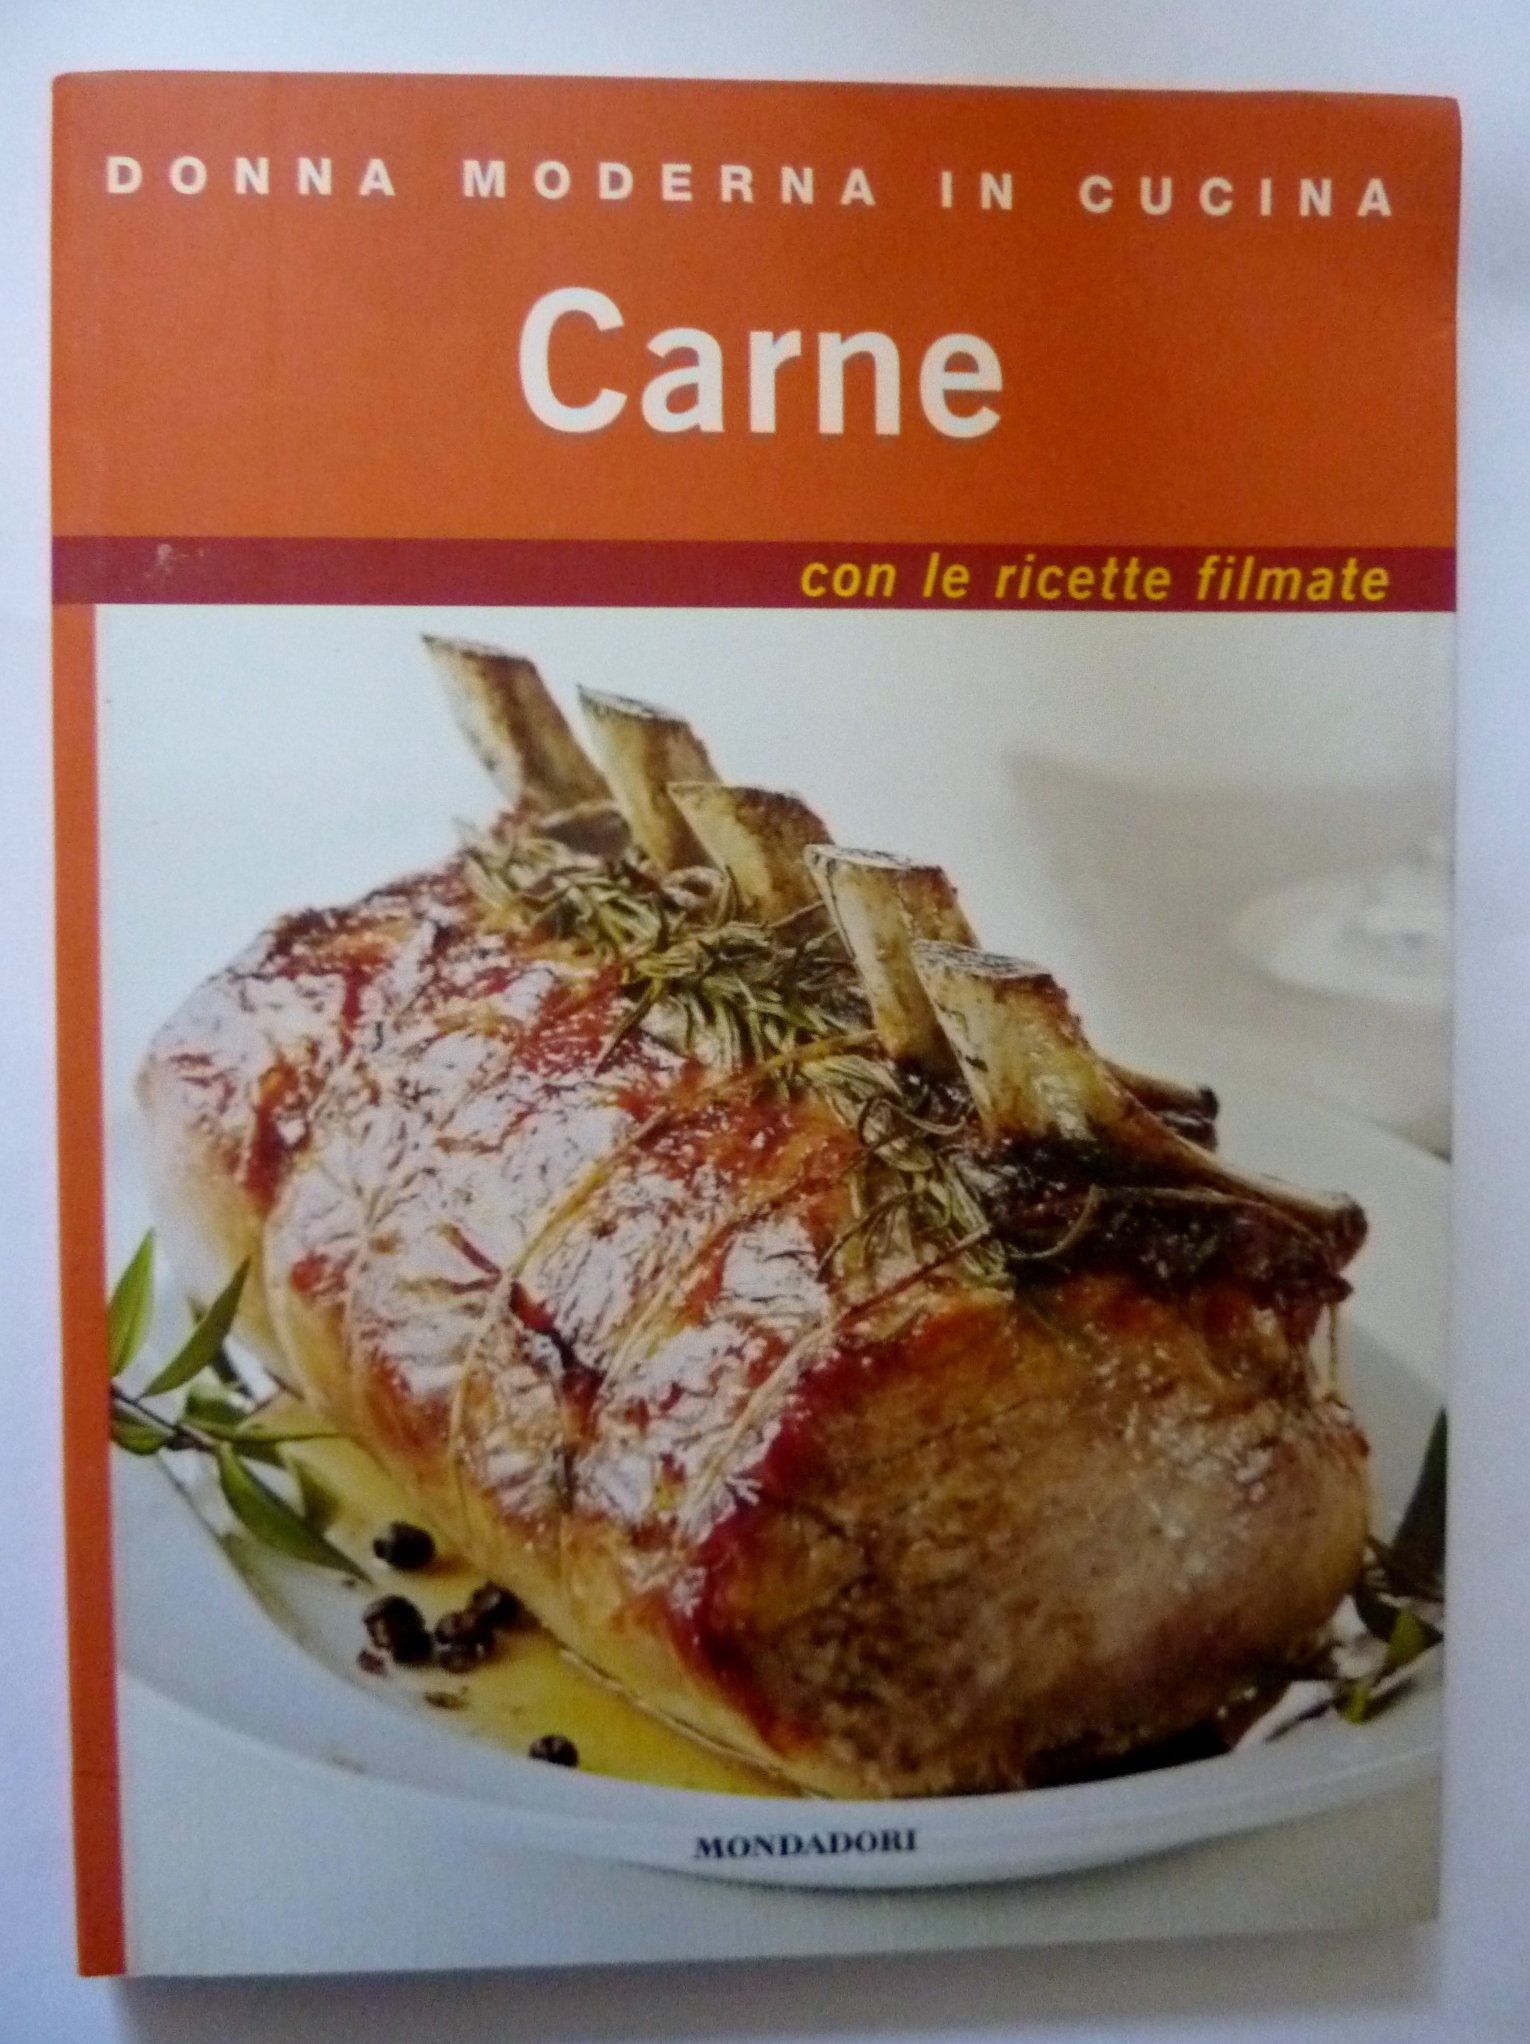 Amazon.it: DONNA MODERNA IN CUCINA Carne con le ricette ...